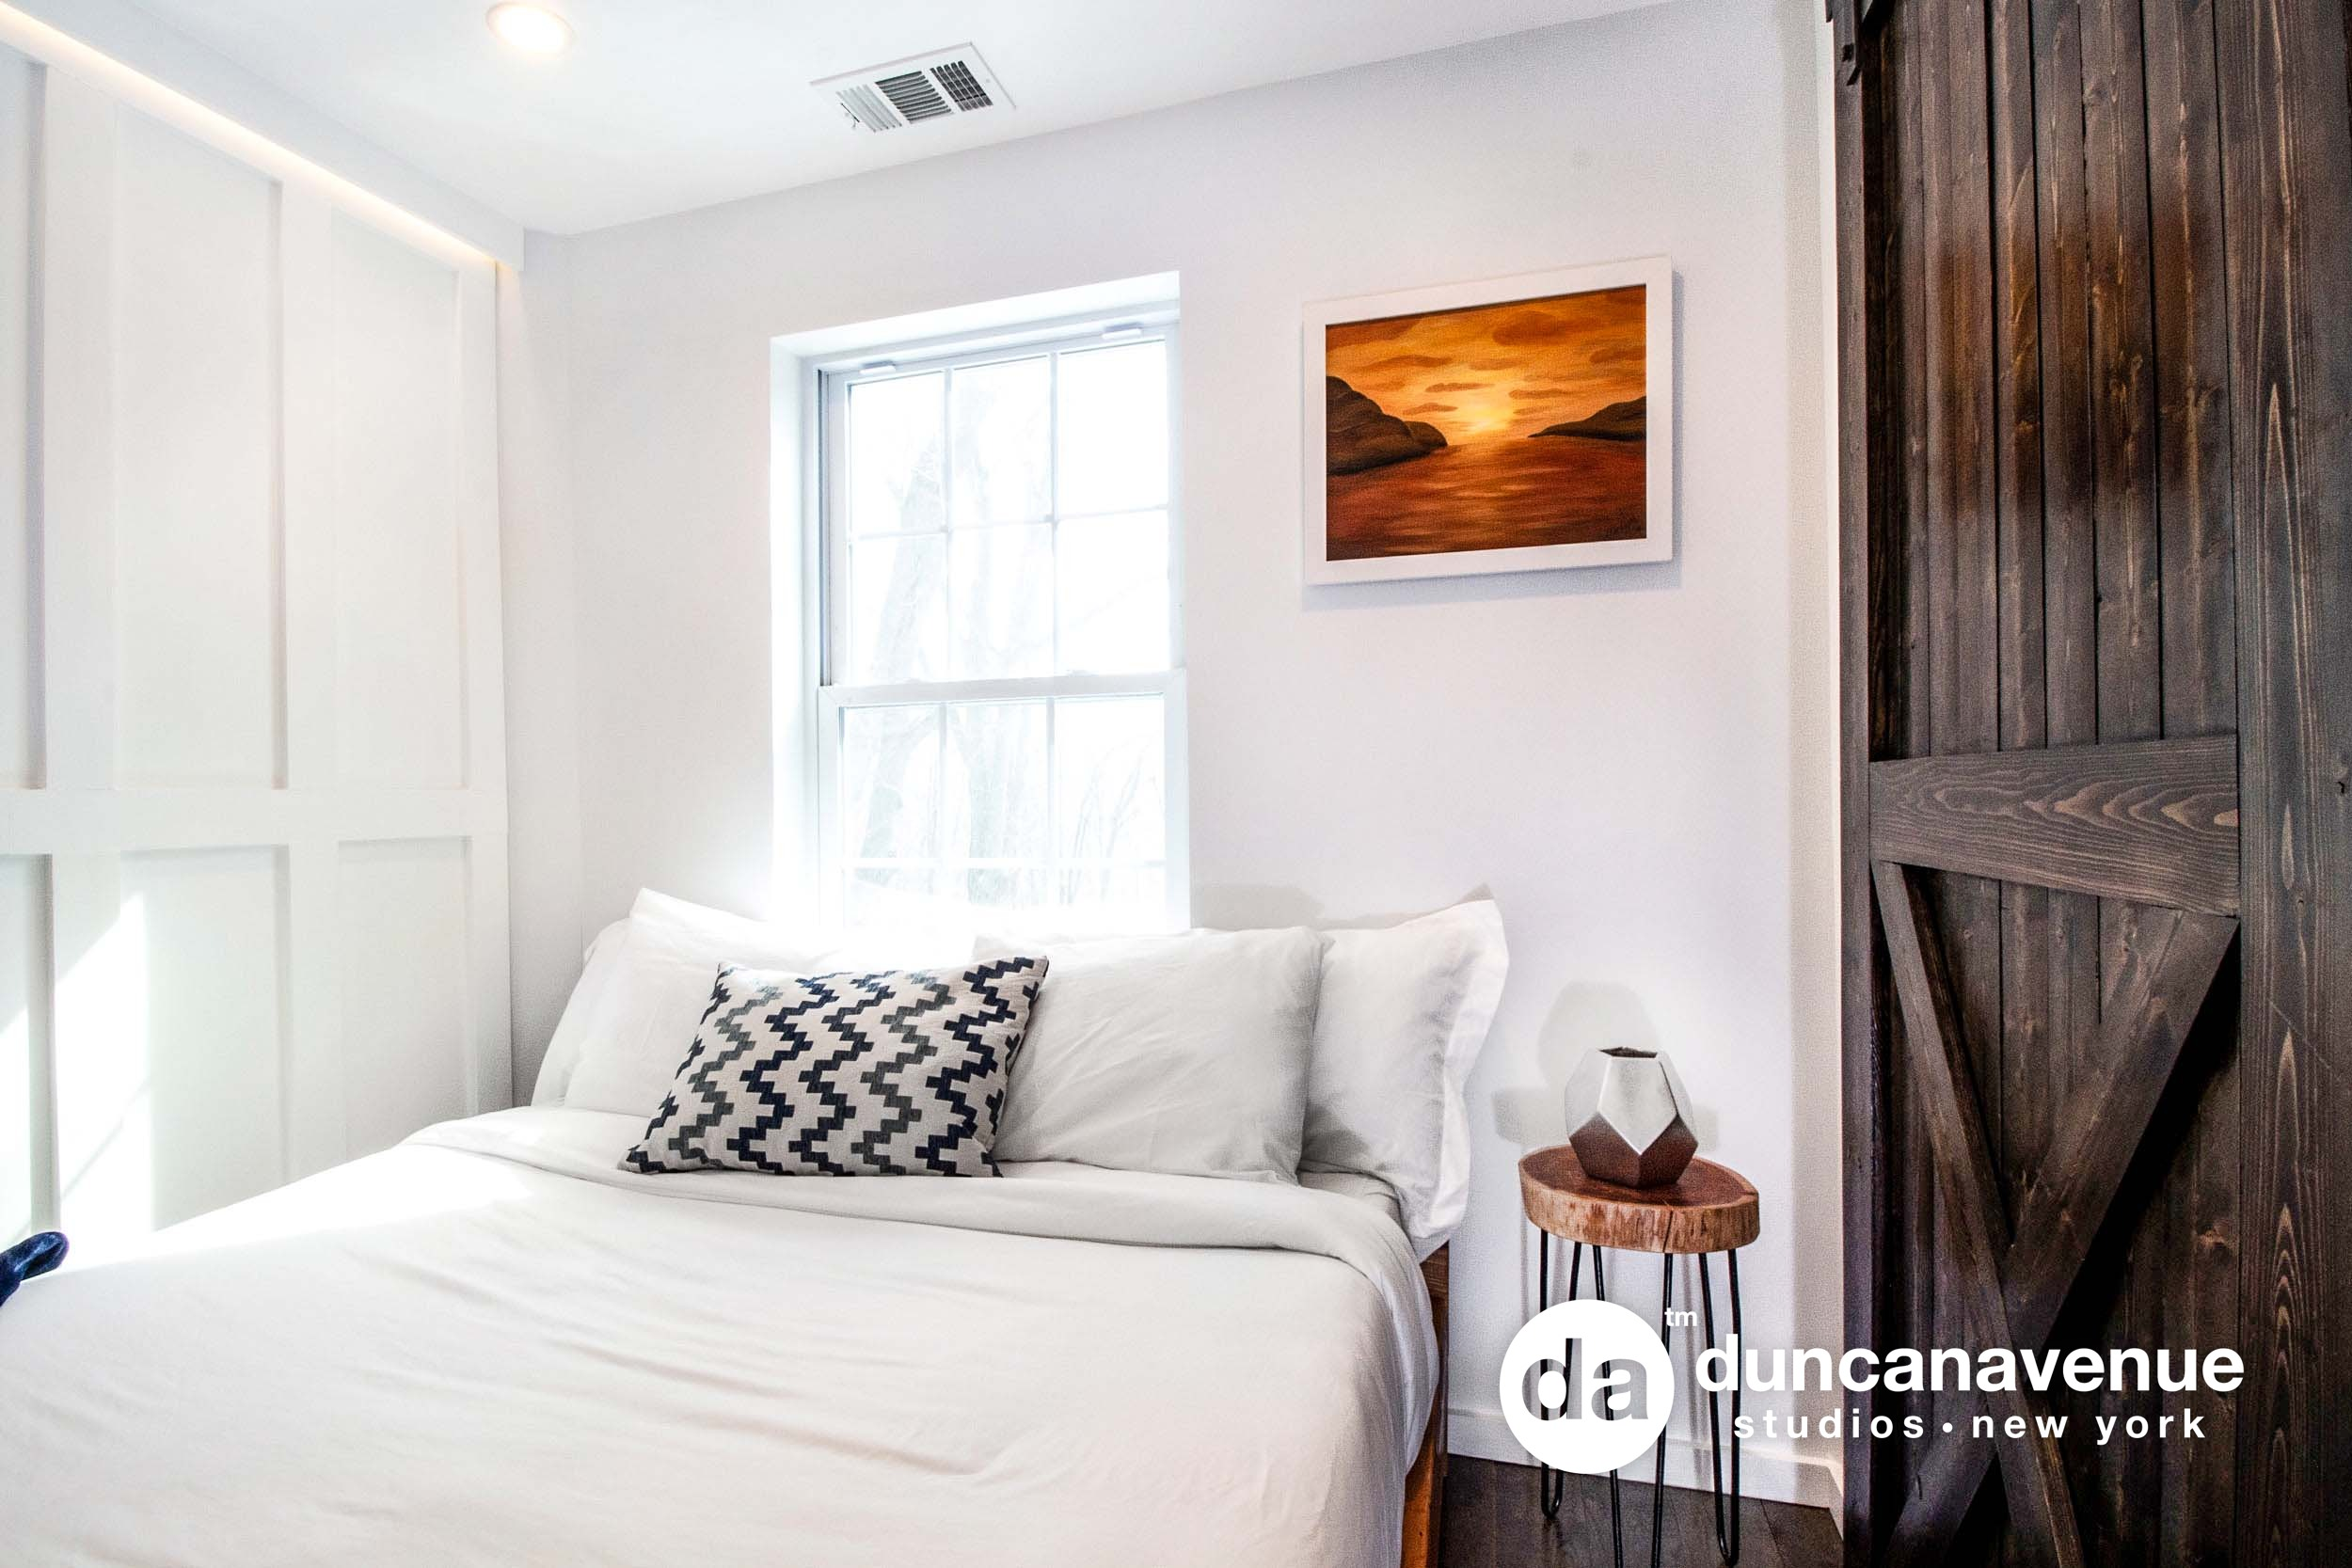 Victorian Home Renovation in Cornwall on Hudson, NY – Interior Design and Real Estate Photography Project by Duncan Avenue Studios – The Best Real Estate Photographer in Hudson Valley